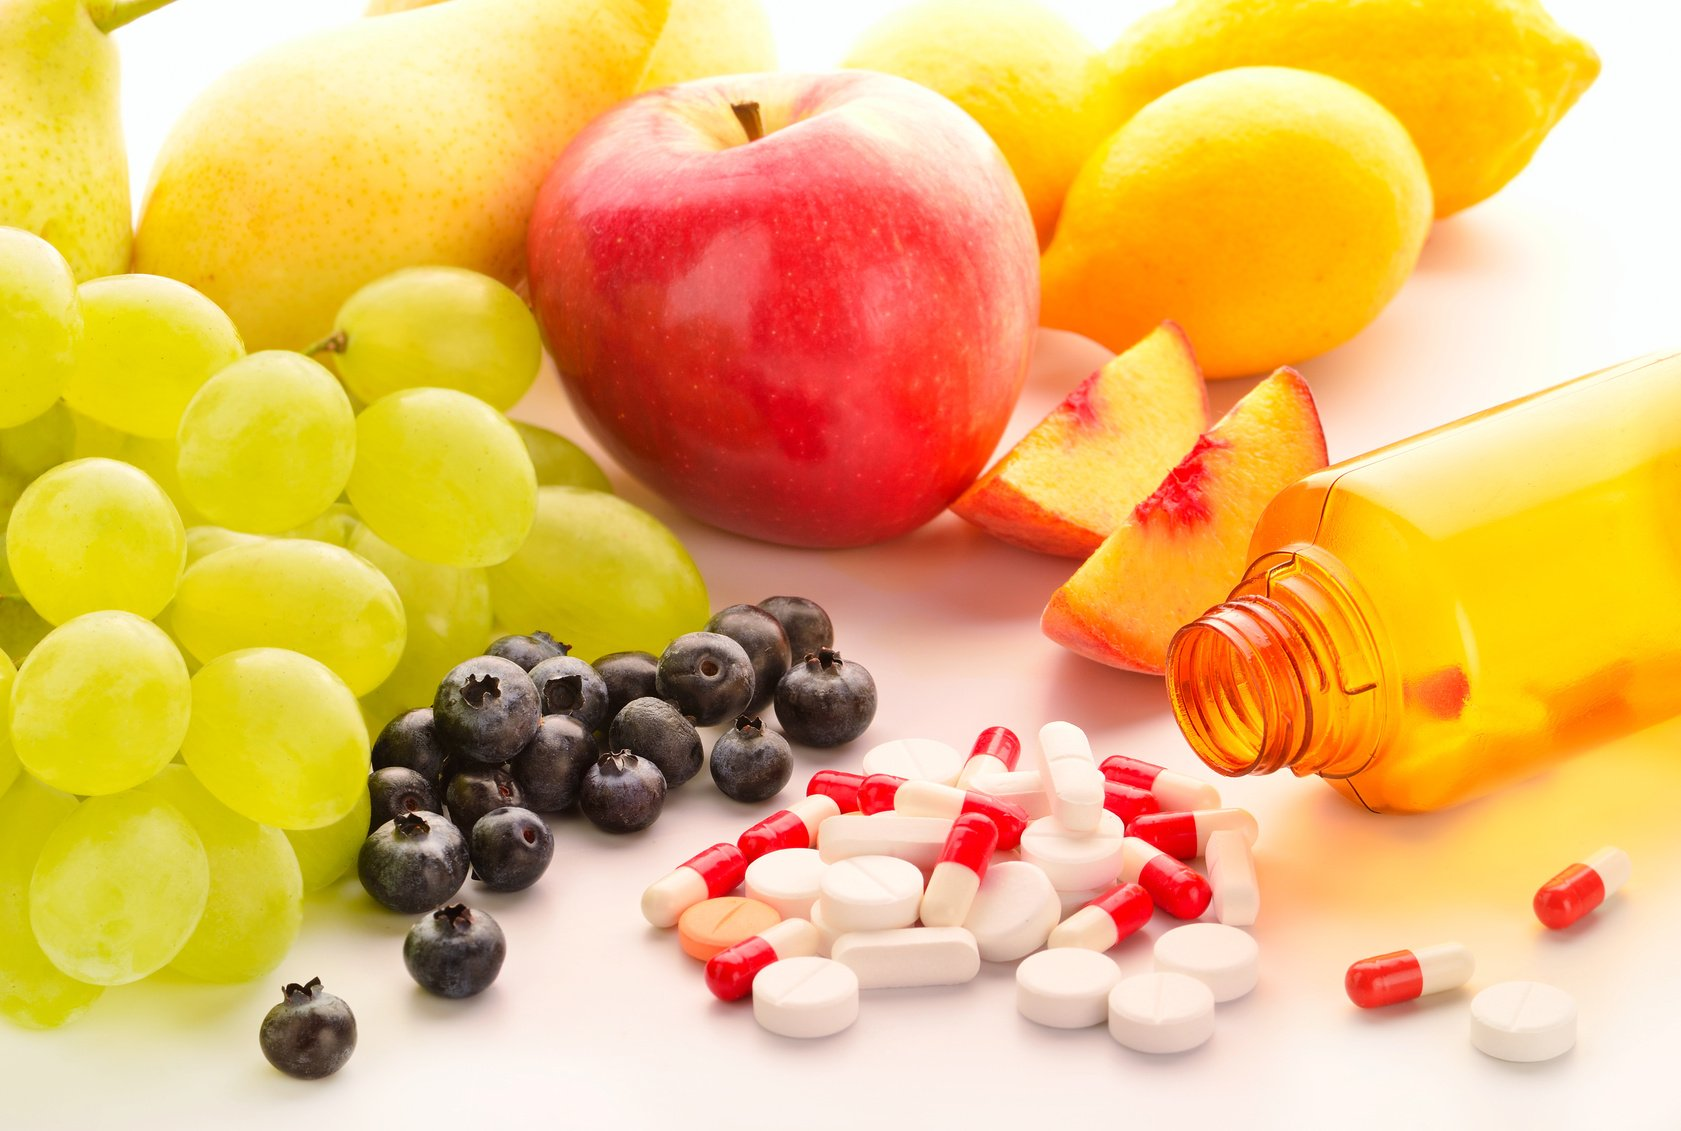 Sometimes, it is nearly impossible to get ALL of the nutrients you need through a regular diet. This is where vitamin supplements prescribed by a qualified nutritionist can help you.